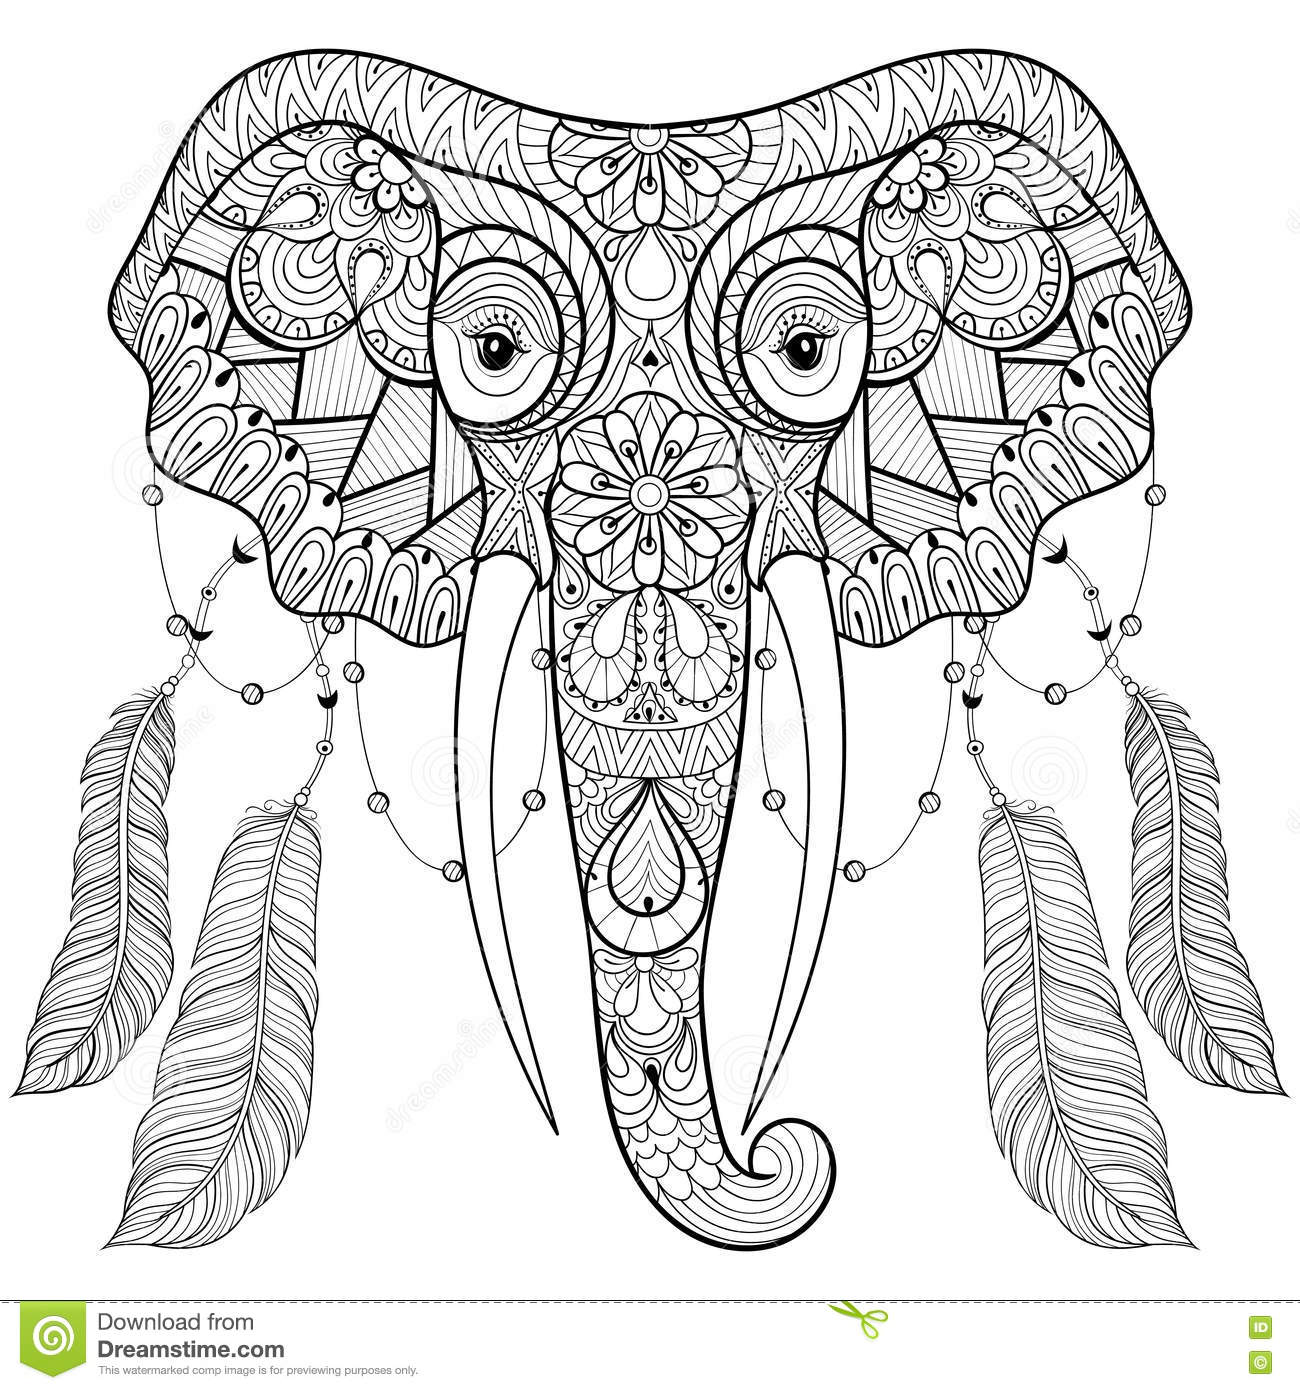 Zentangle Indian Elephant With Bird Feathers In Boho Chic